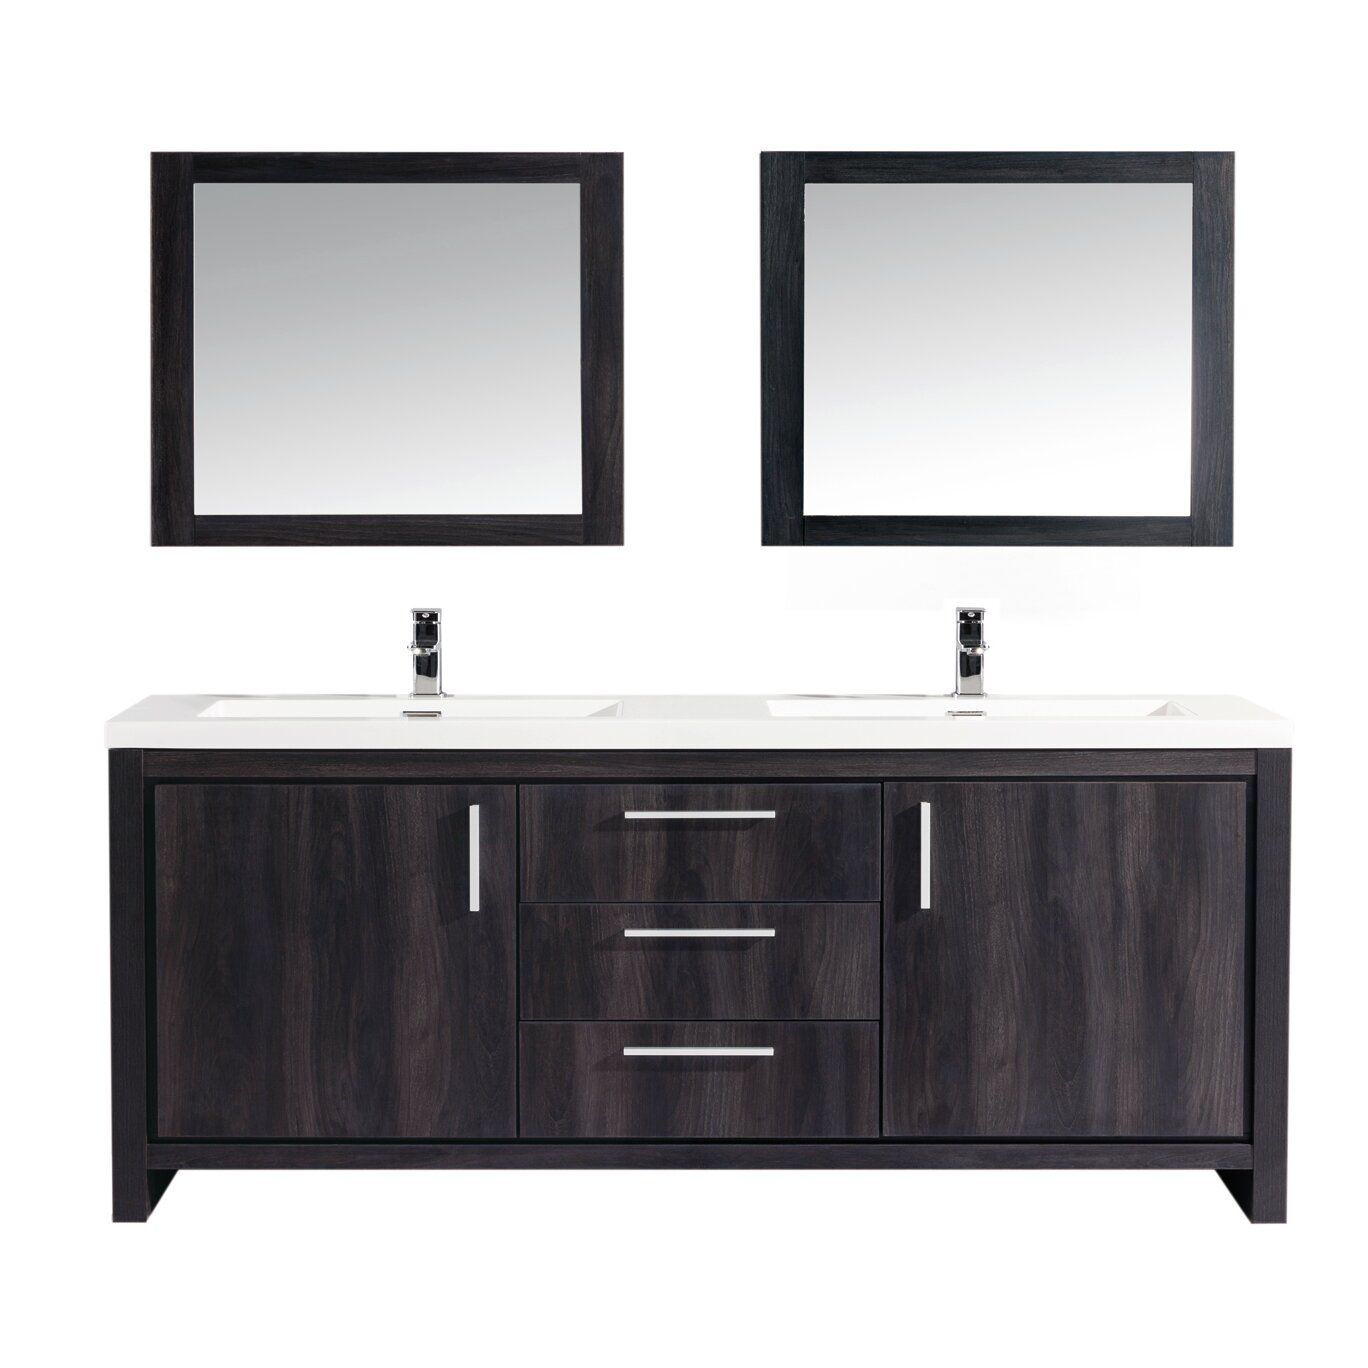 Mtdvanities Miami 59 Double Sink Modern Bathroom Vanity